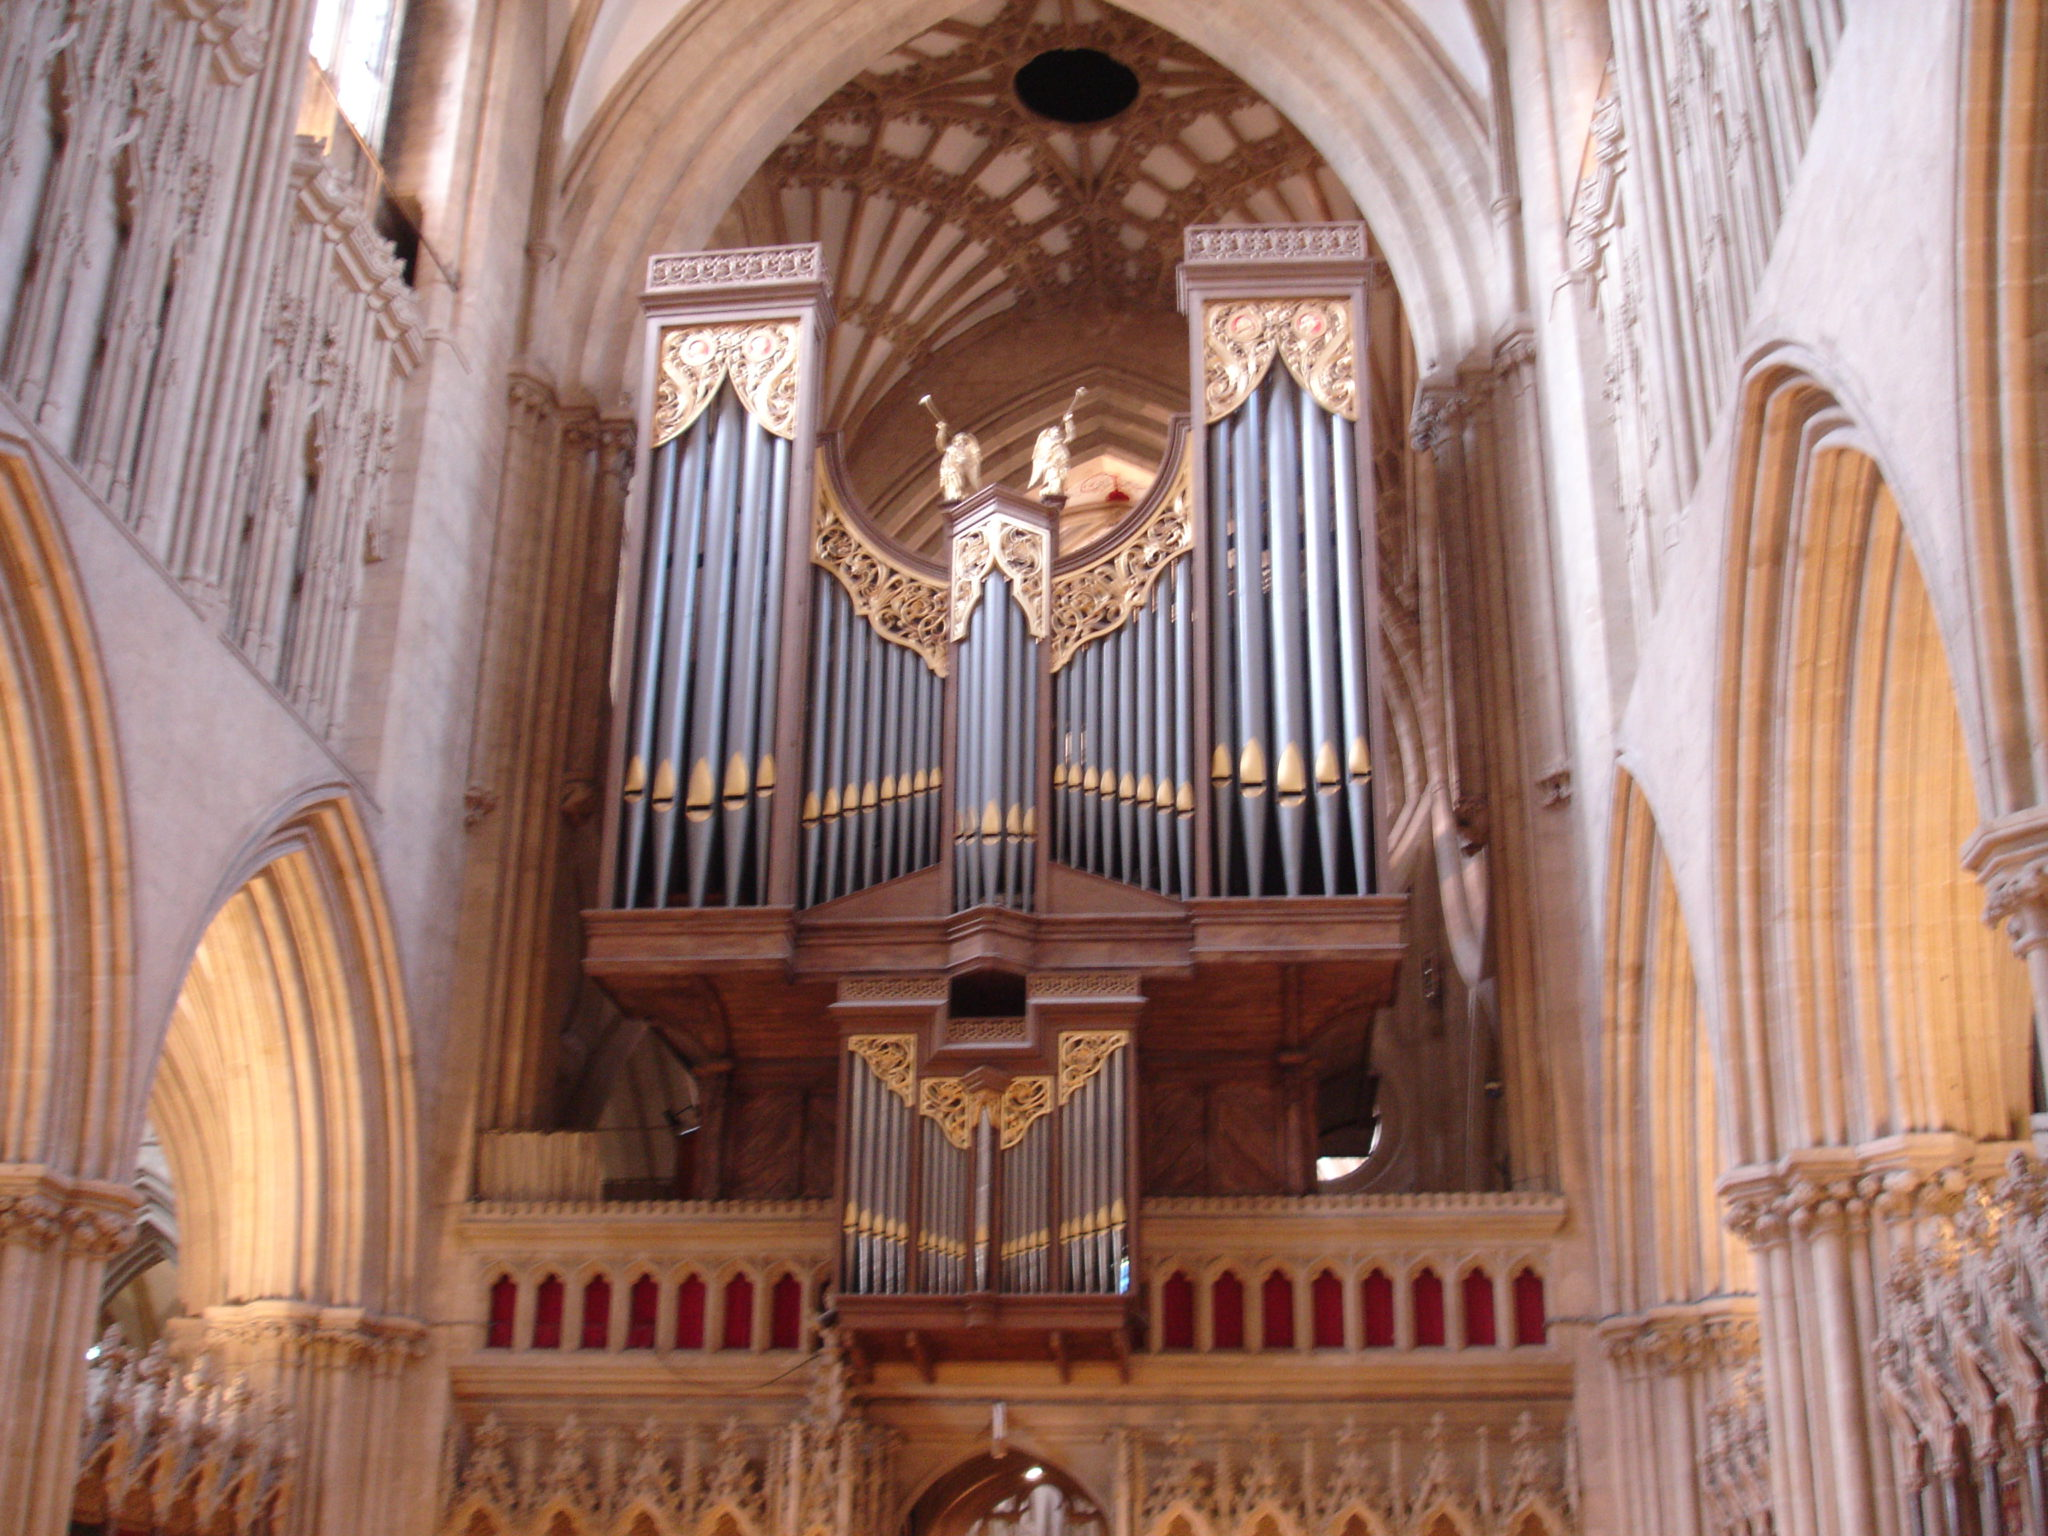 Amazing_organ_at_Wells_Cathedral